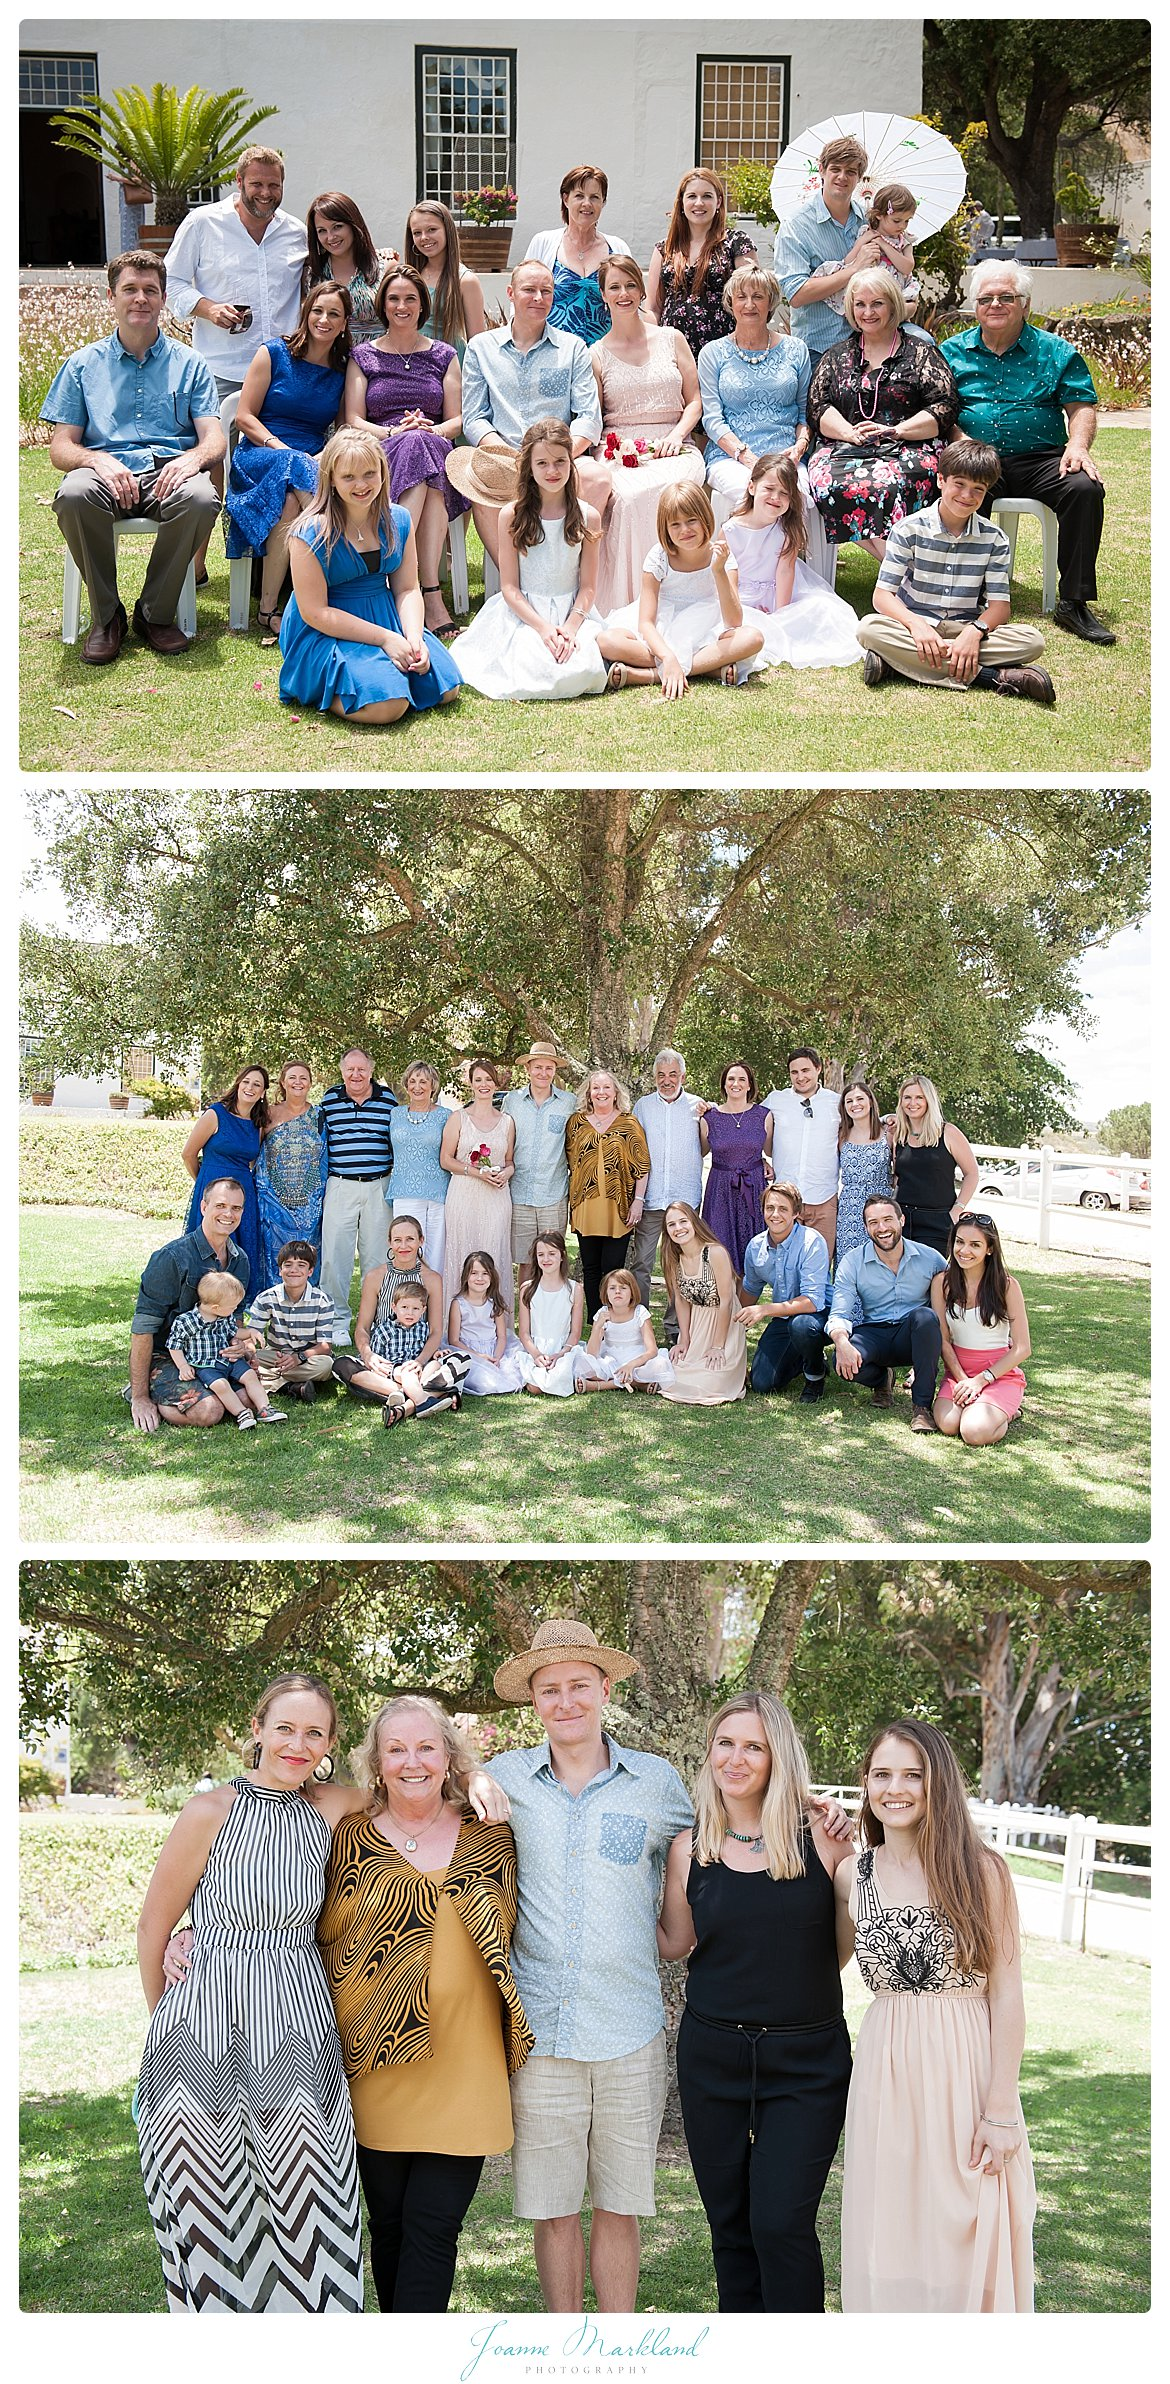 Grootepost-wedding-photography-joanne-markland-020